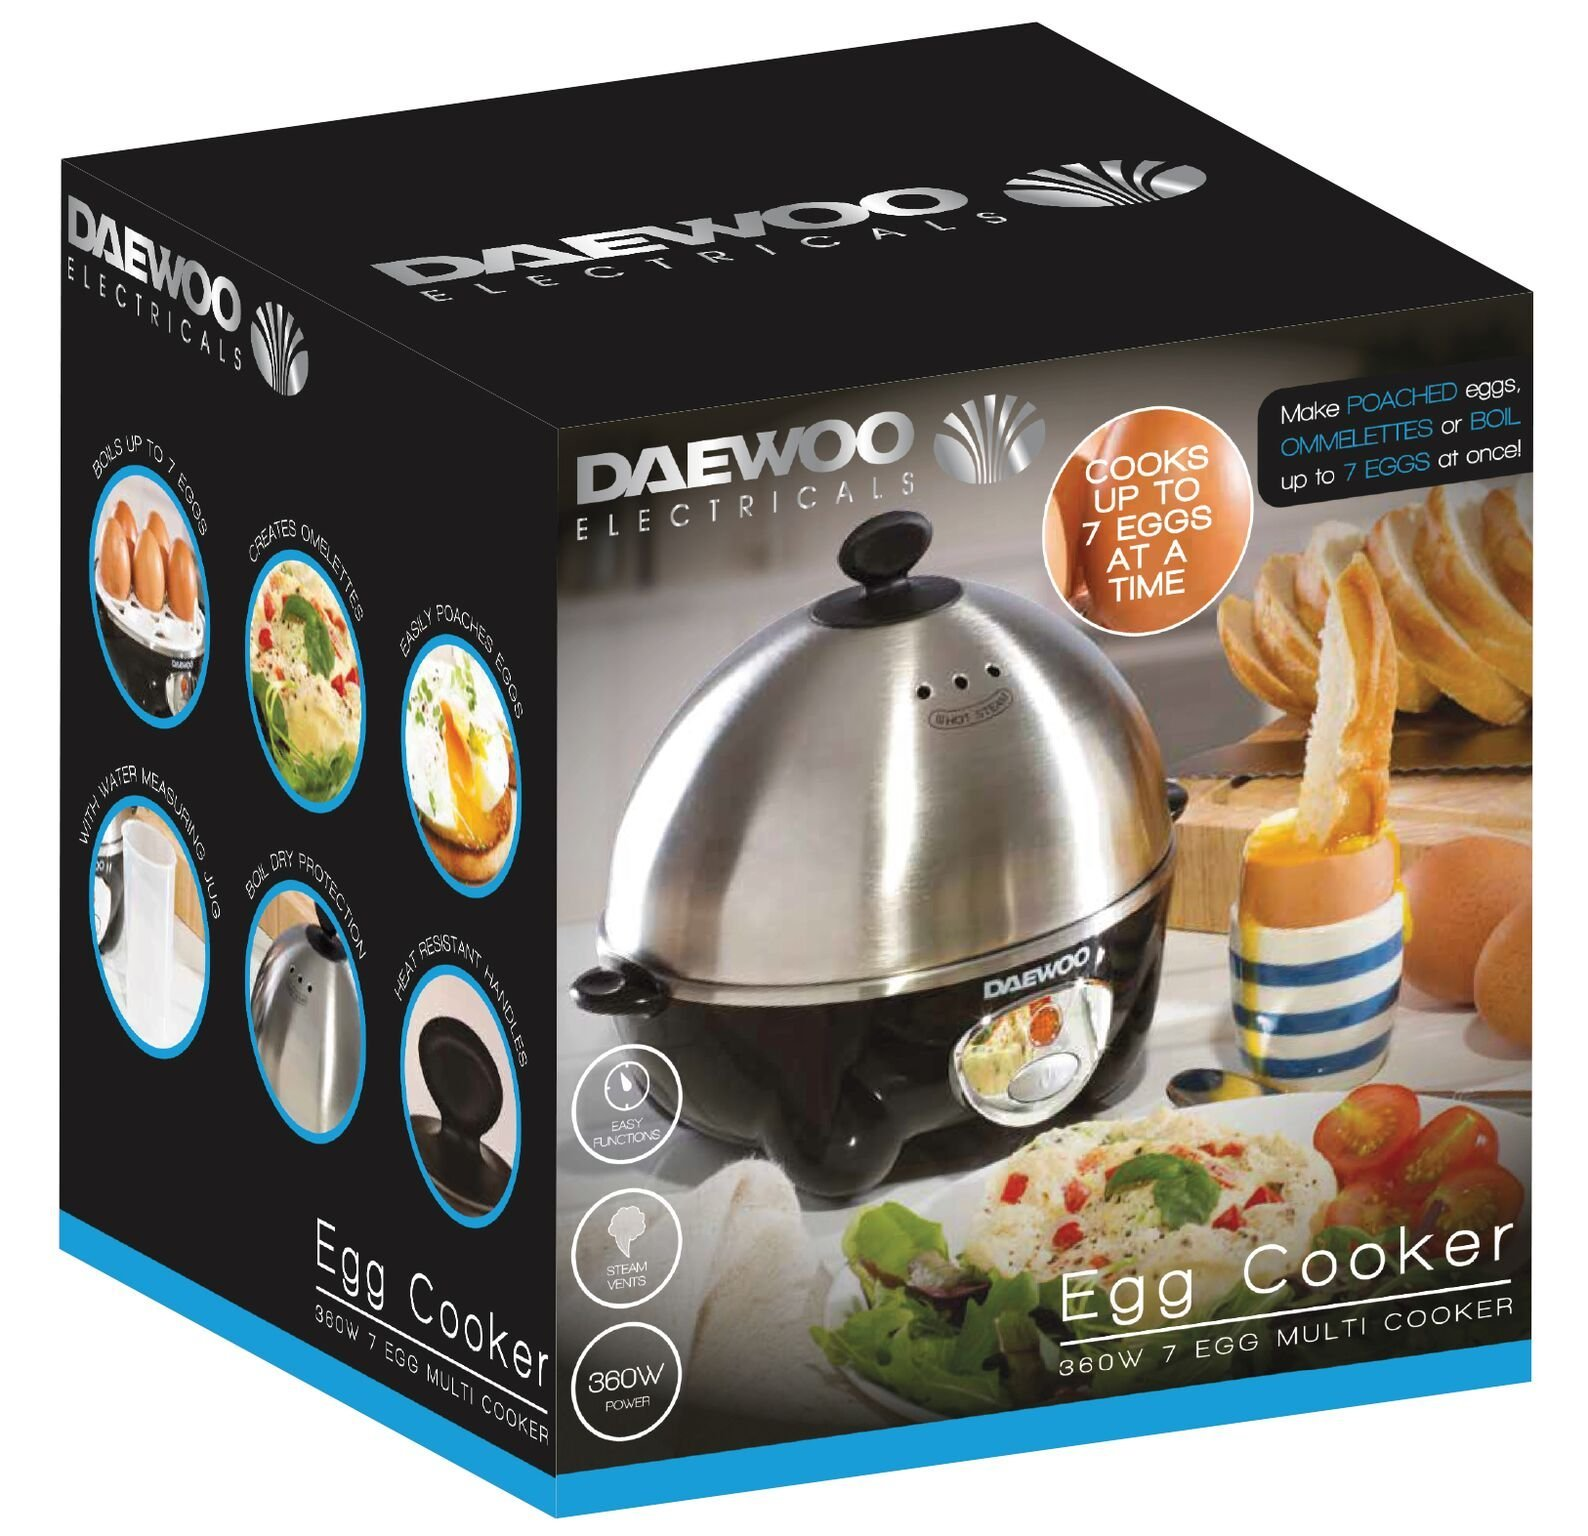 812s7IP62mL - Daewoo 360W Compact Egg & Omelette Cooker with Steam Vents, Boil Dry Protection, Heat-Resistant Handles - Silver/Black